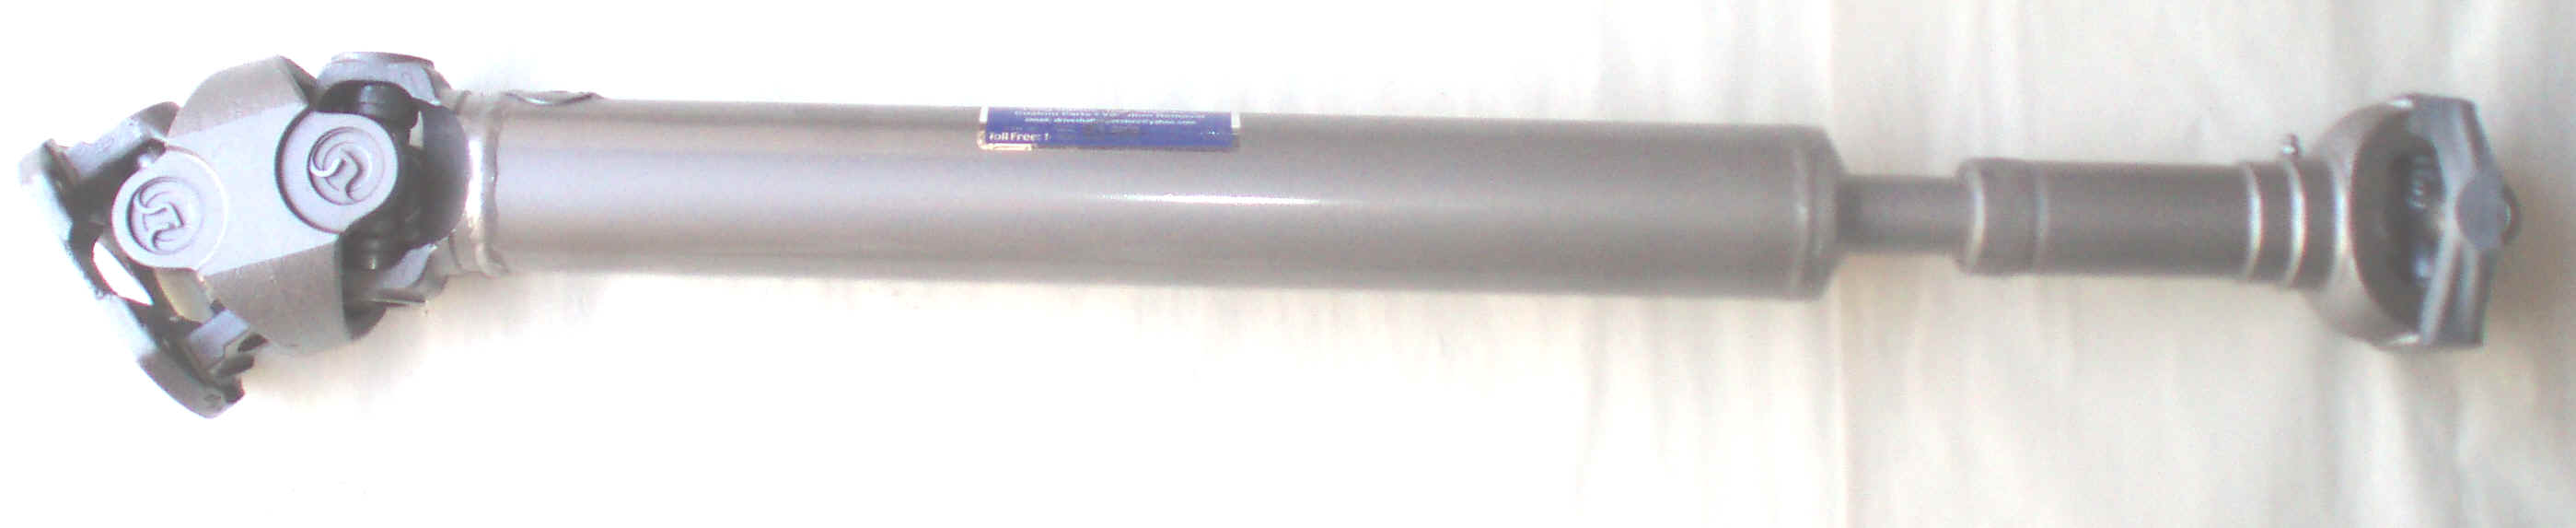 Custom Chevy Drive Shafts 1976 1 2 Ton Lifted Front Half 1310 Or Gmc Lifts 8 And Below